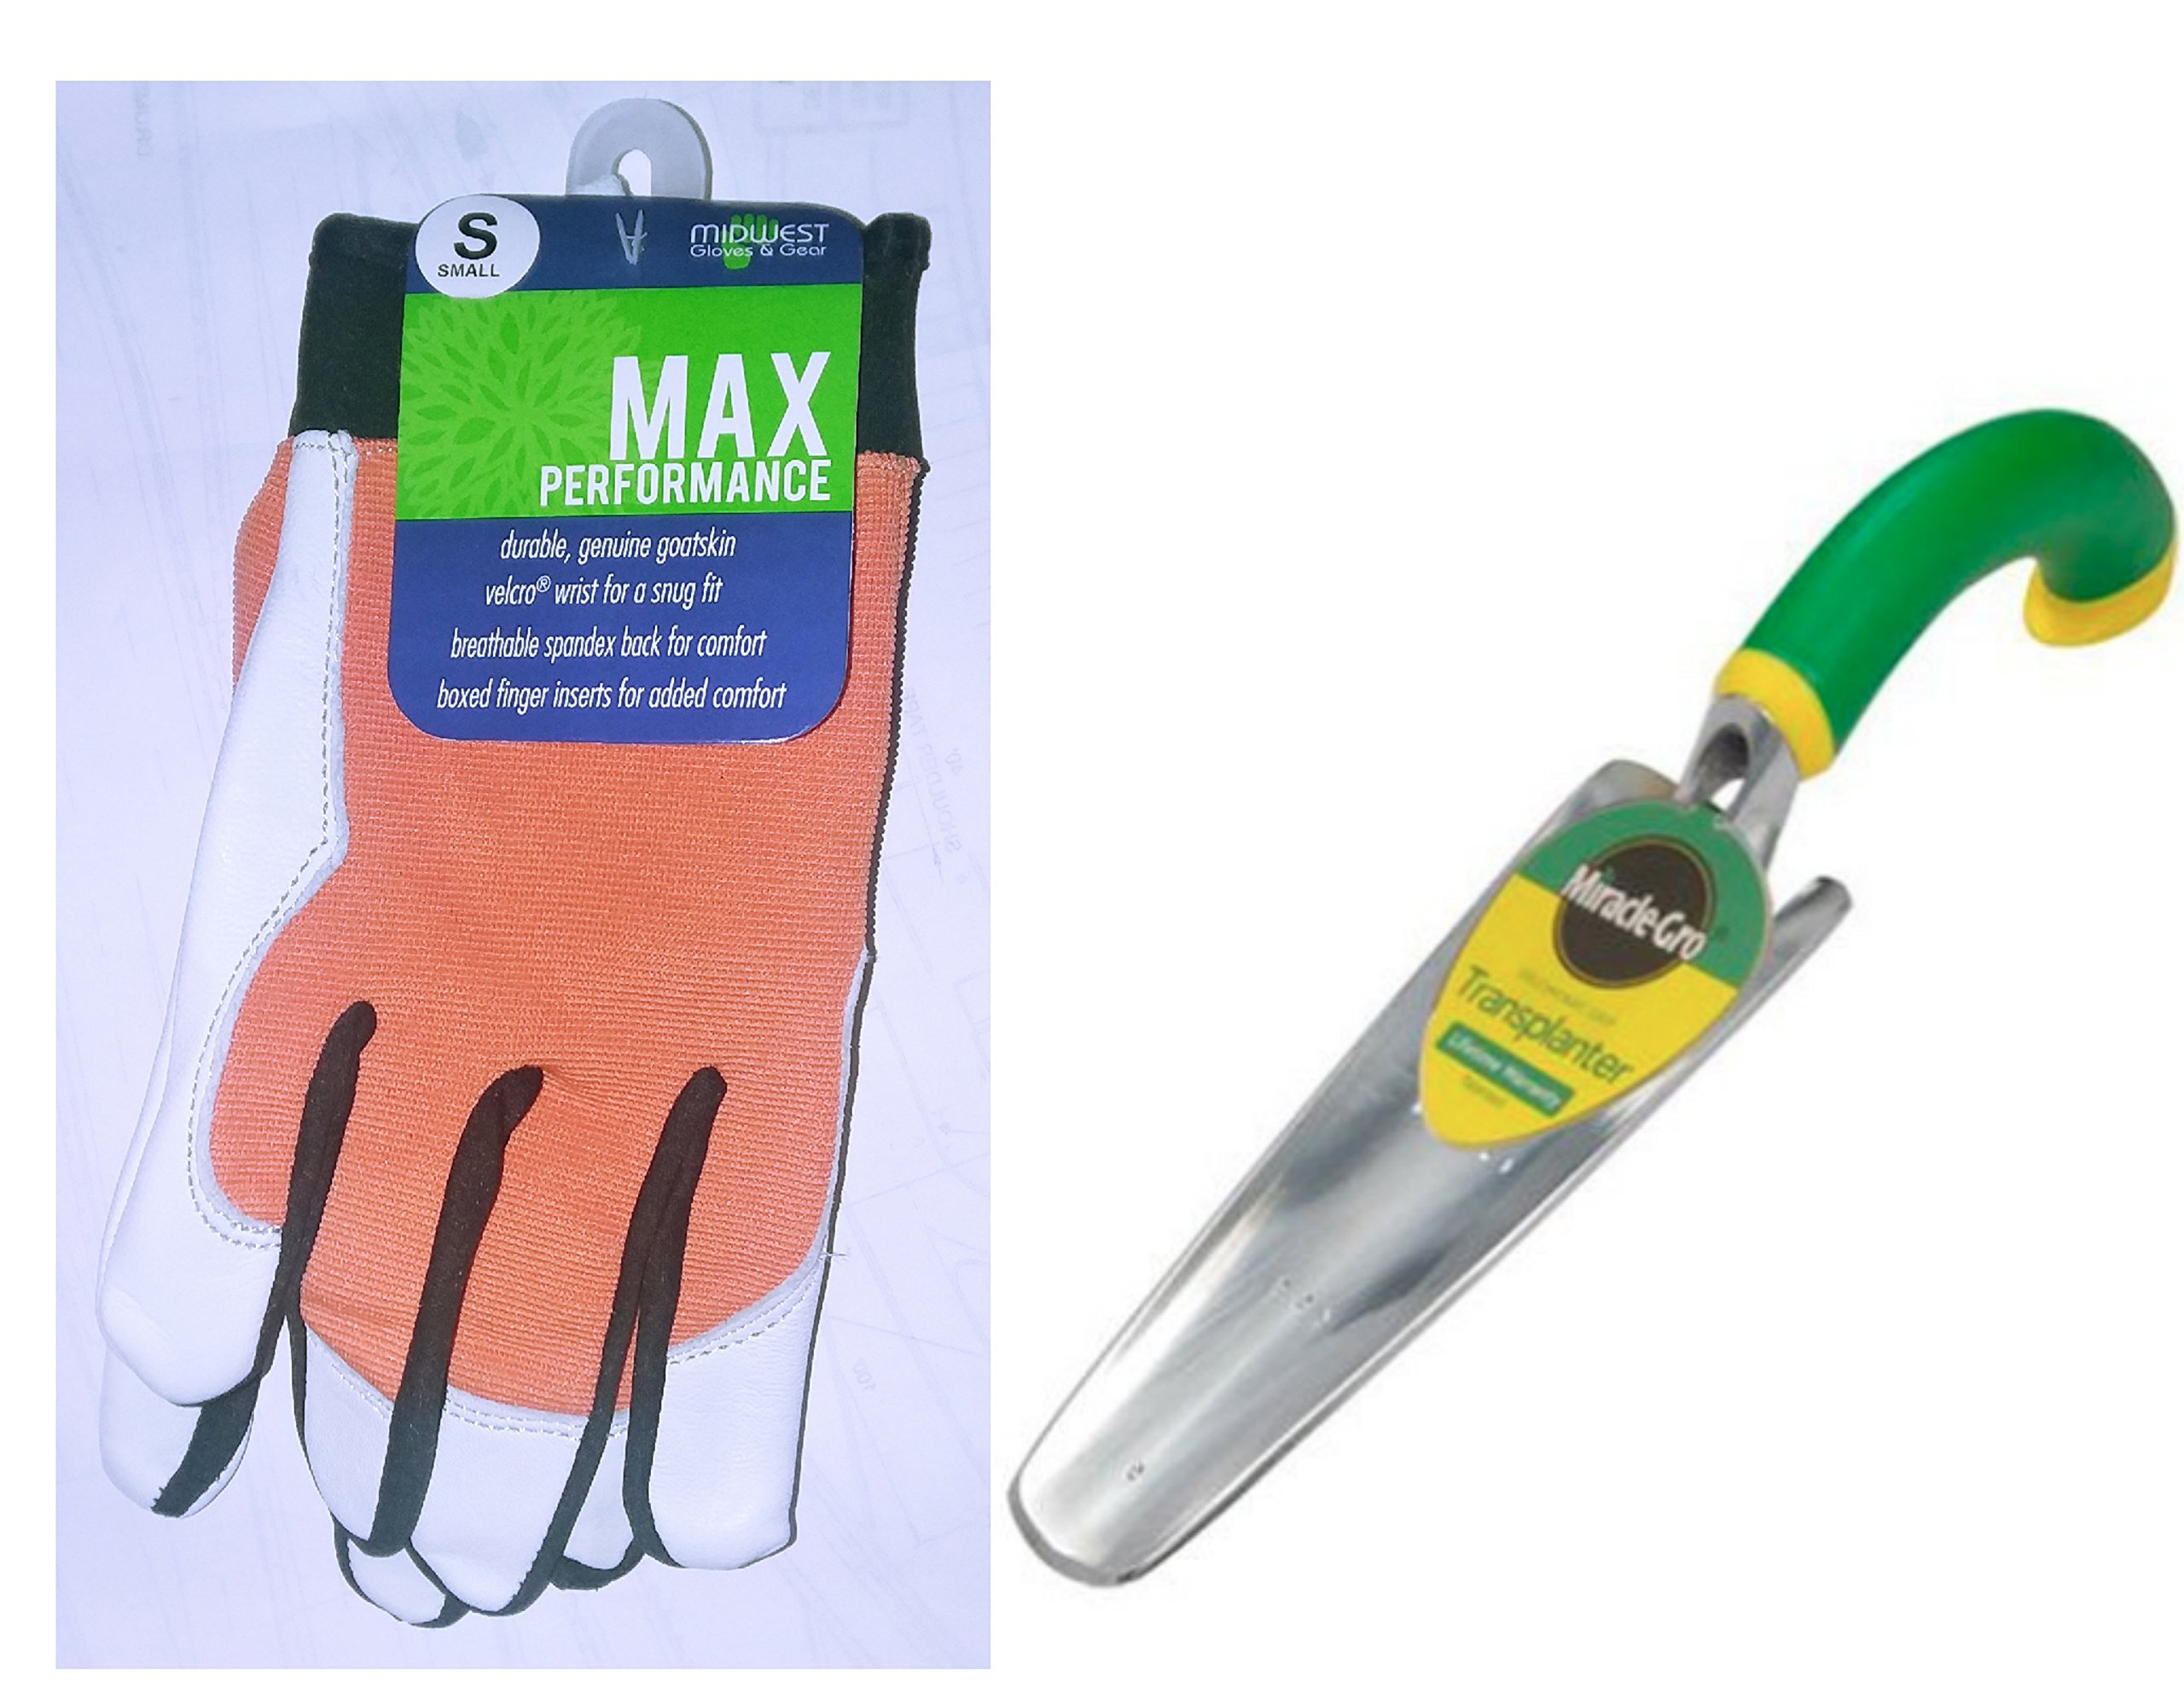 Gift for Mom Gardening Bundle: Goatskin/Spandex Leather Palm Glove with Boxed Fingers -Size SMALL and Miracle-Gro 101-MG Ergonomic Aluminum Transplanter